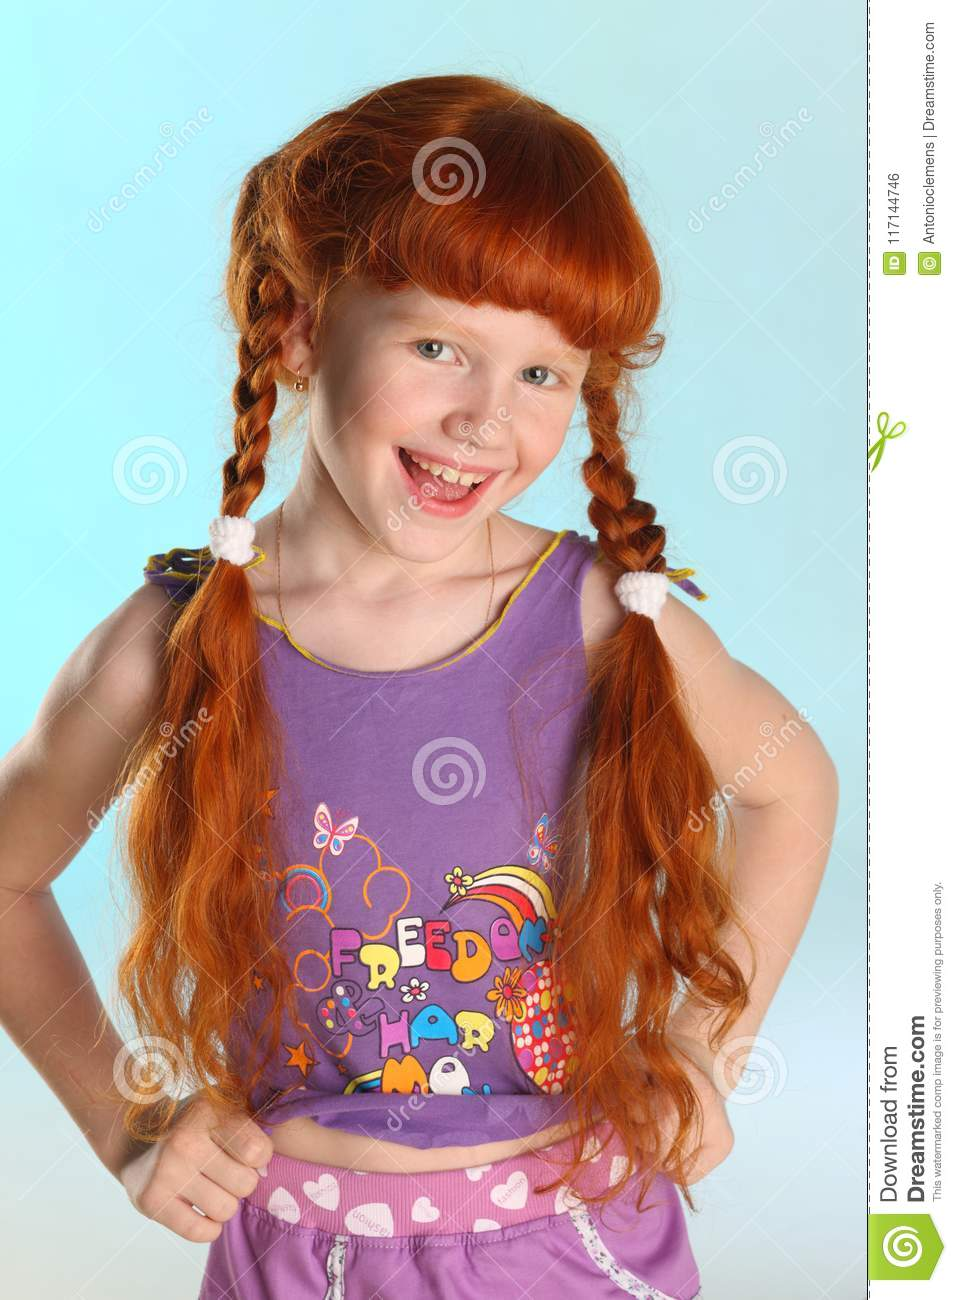 Redhead pigtails young teen girl yes consider